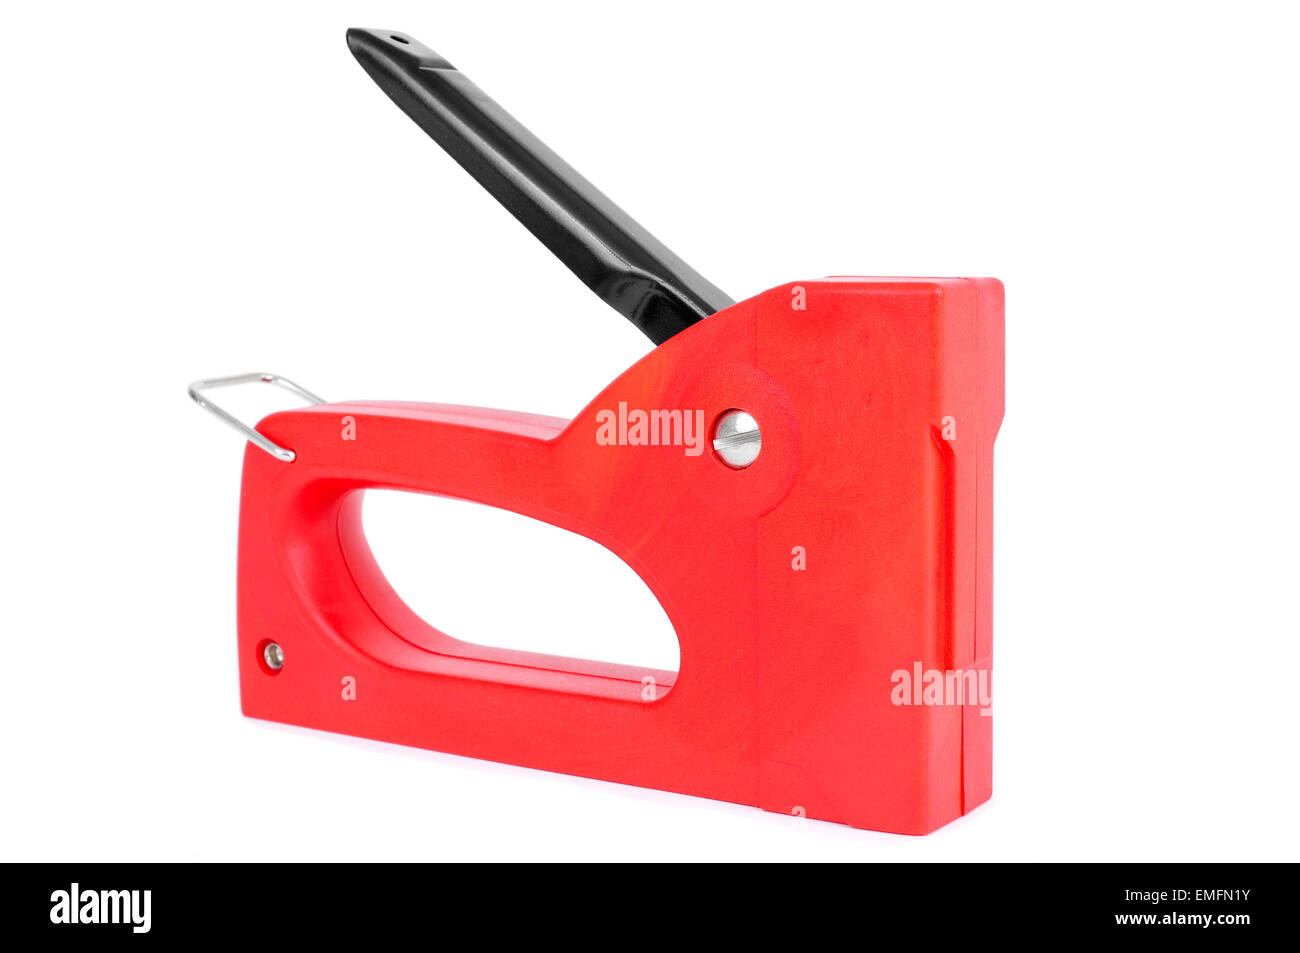 a red manual staple gun isolated on a white background - Stock Image